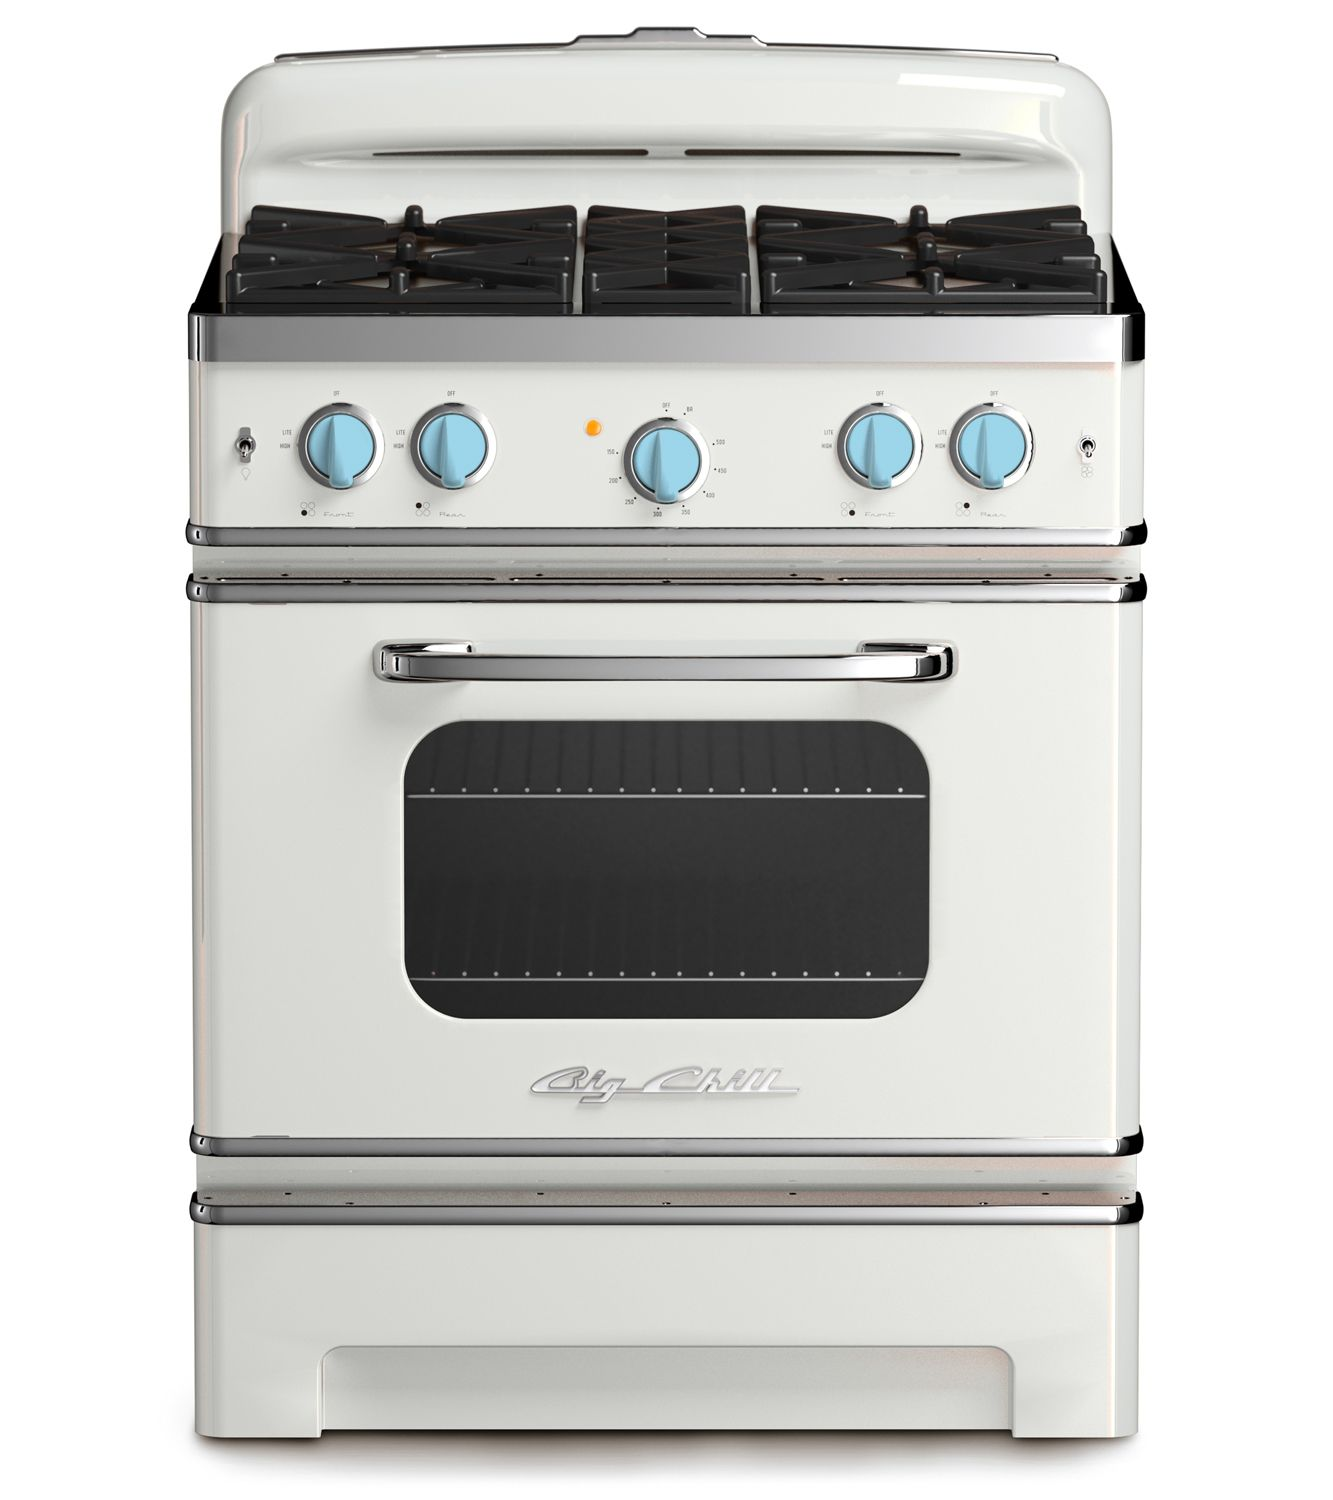 Big Chill White Stove With Blue Knobs